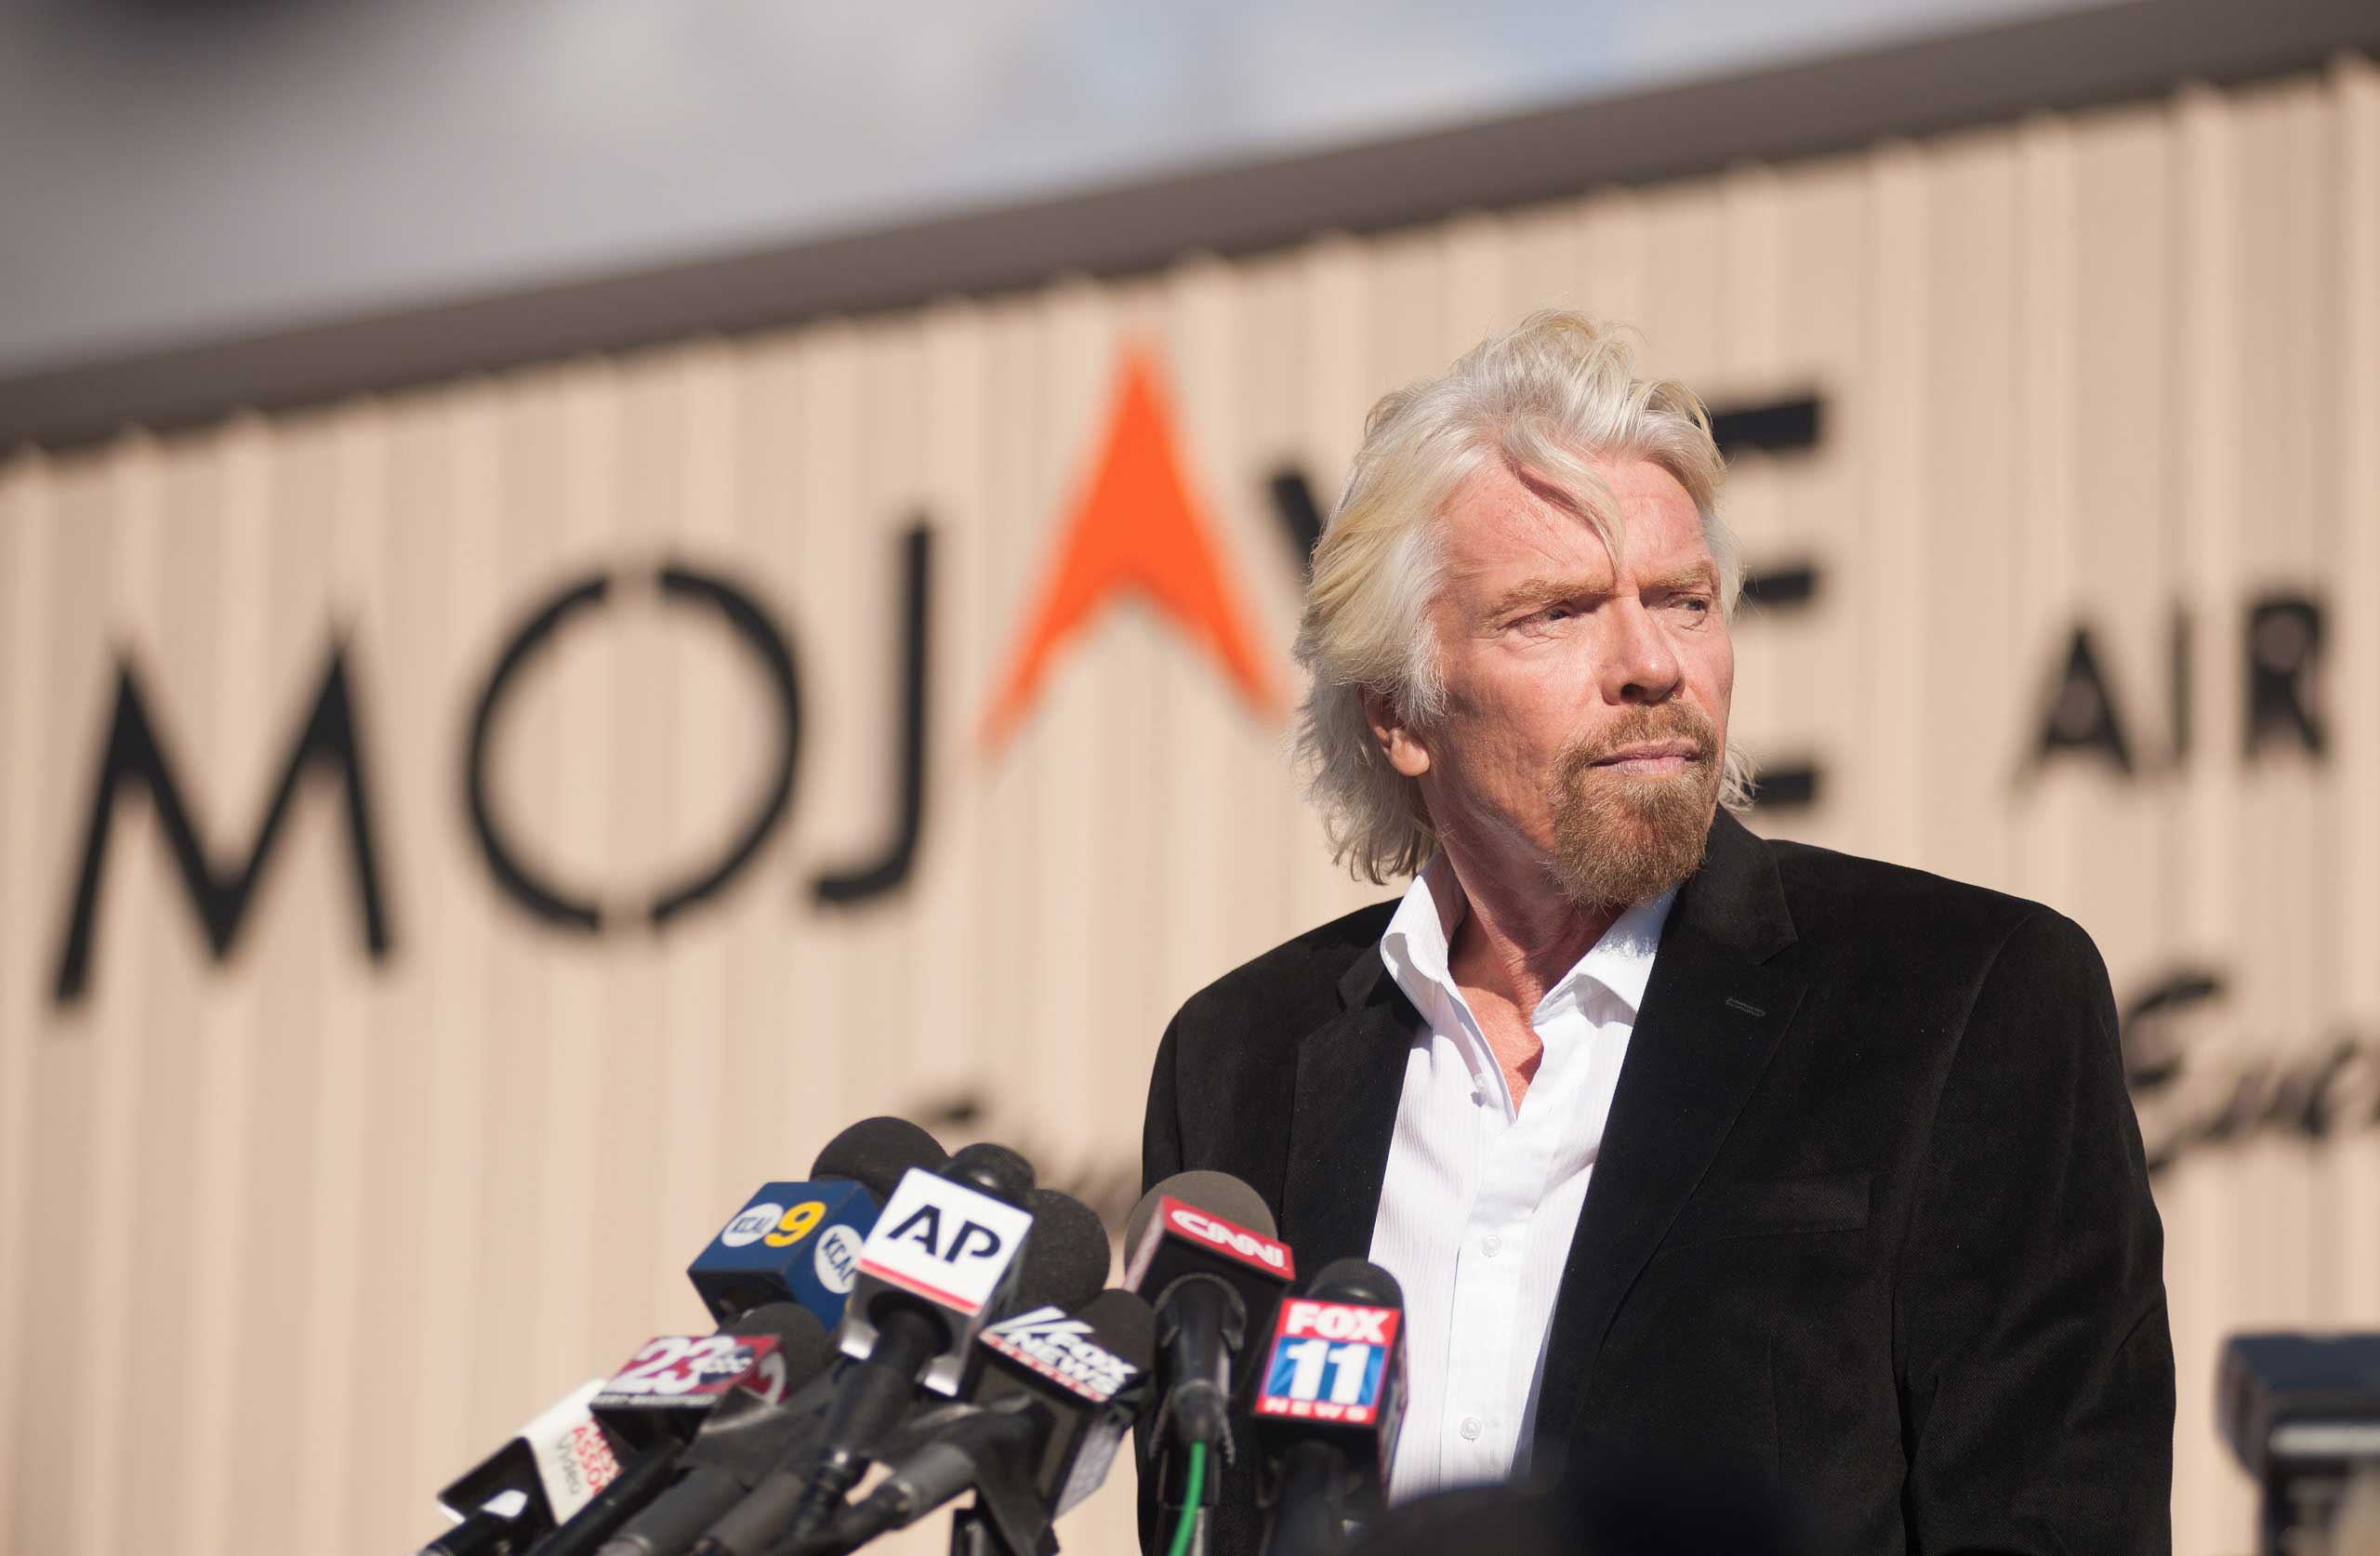 Virgin founder Sir Richard Branson speaks at a press conference after a Virgin Galactic test spacecraft crashed, at the Mojave Air and Space Port in Mojave, Calif. on Nov. 1, 2014.